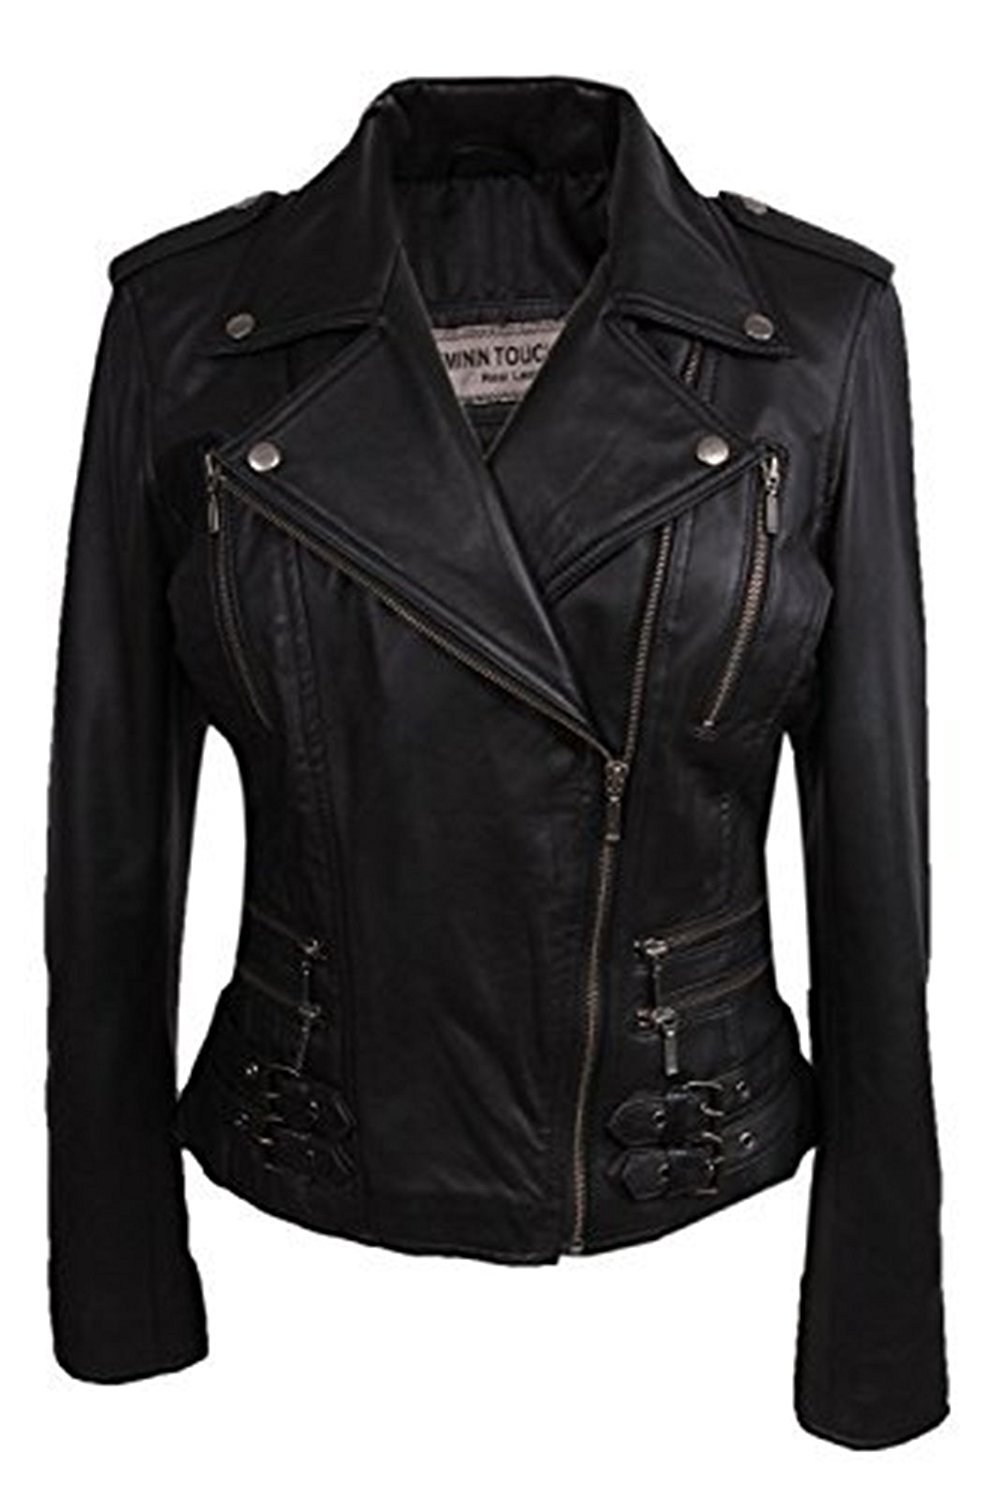 Brandslock Ladies Womens 100% Real Leather Biker Jacket Black Fitted Bikers Style Vintage Rock (2XL, Black) by Brandslock